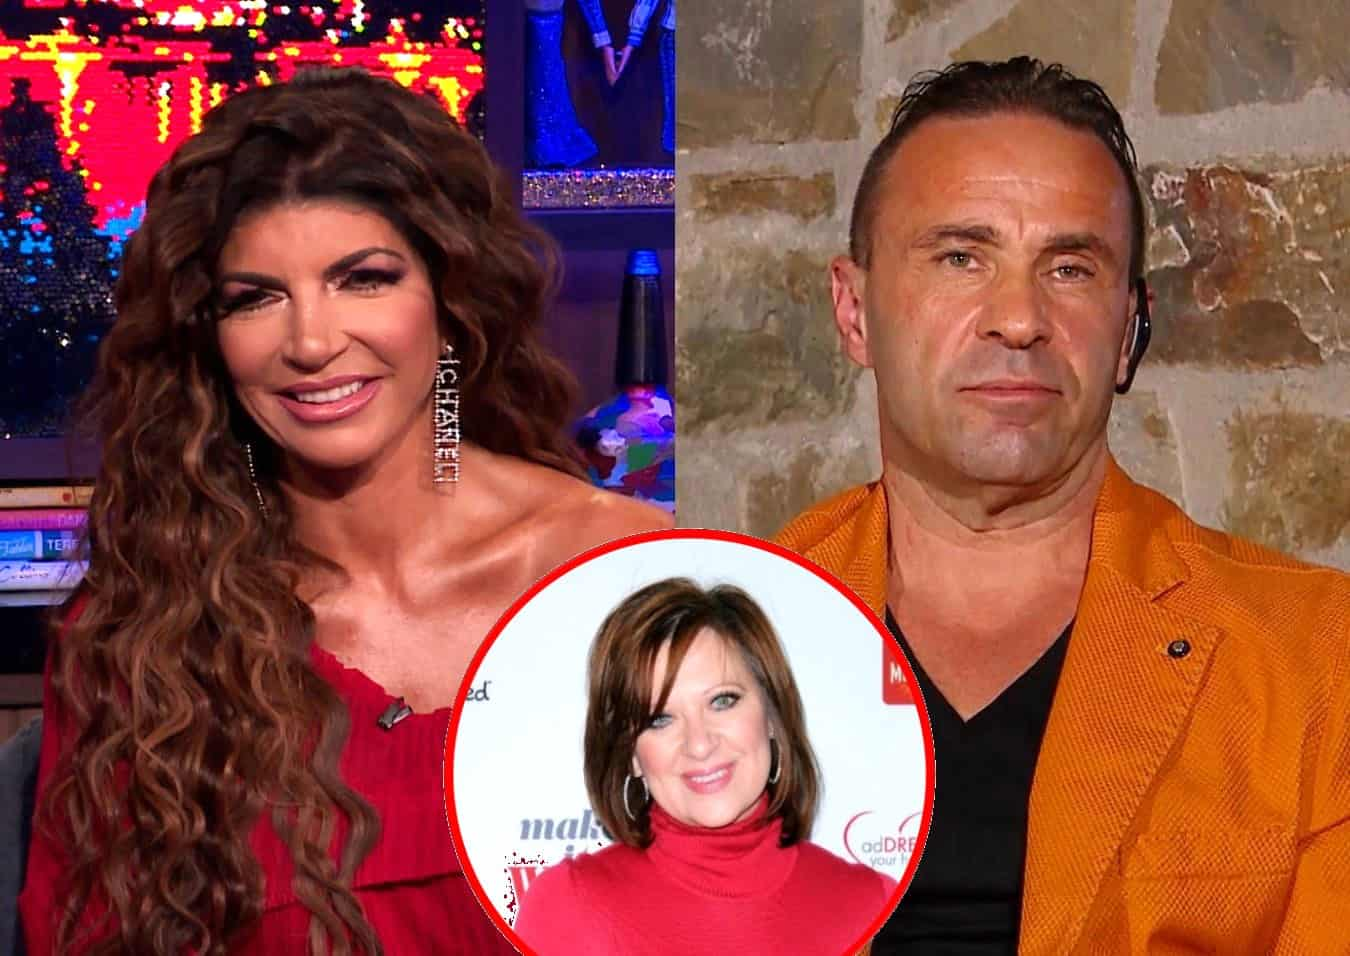 RHONJ's Teresa Giudice and Husband Joe Reveal Status of Their Marriage as Teresa Suspects Caroline Manzo Ratted Her Out, Plus Joe Reacts to Photos of Teresa With Another Man